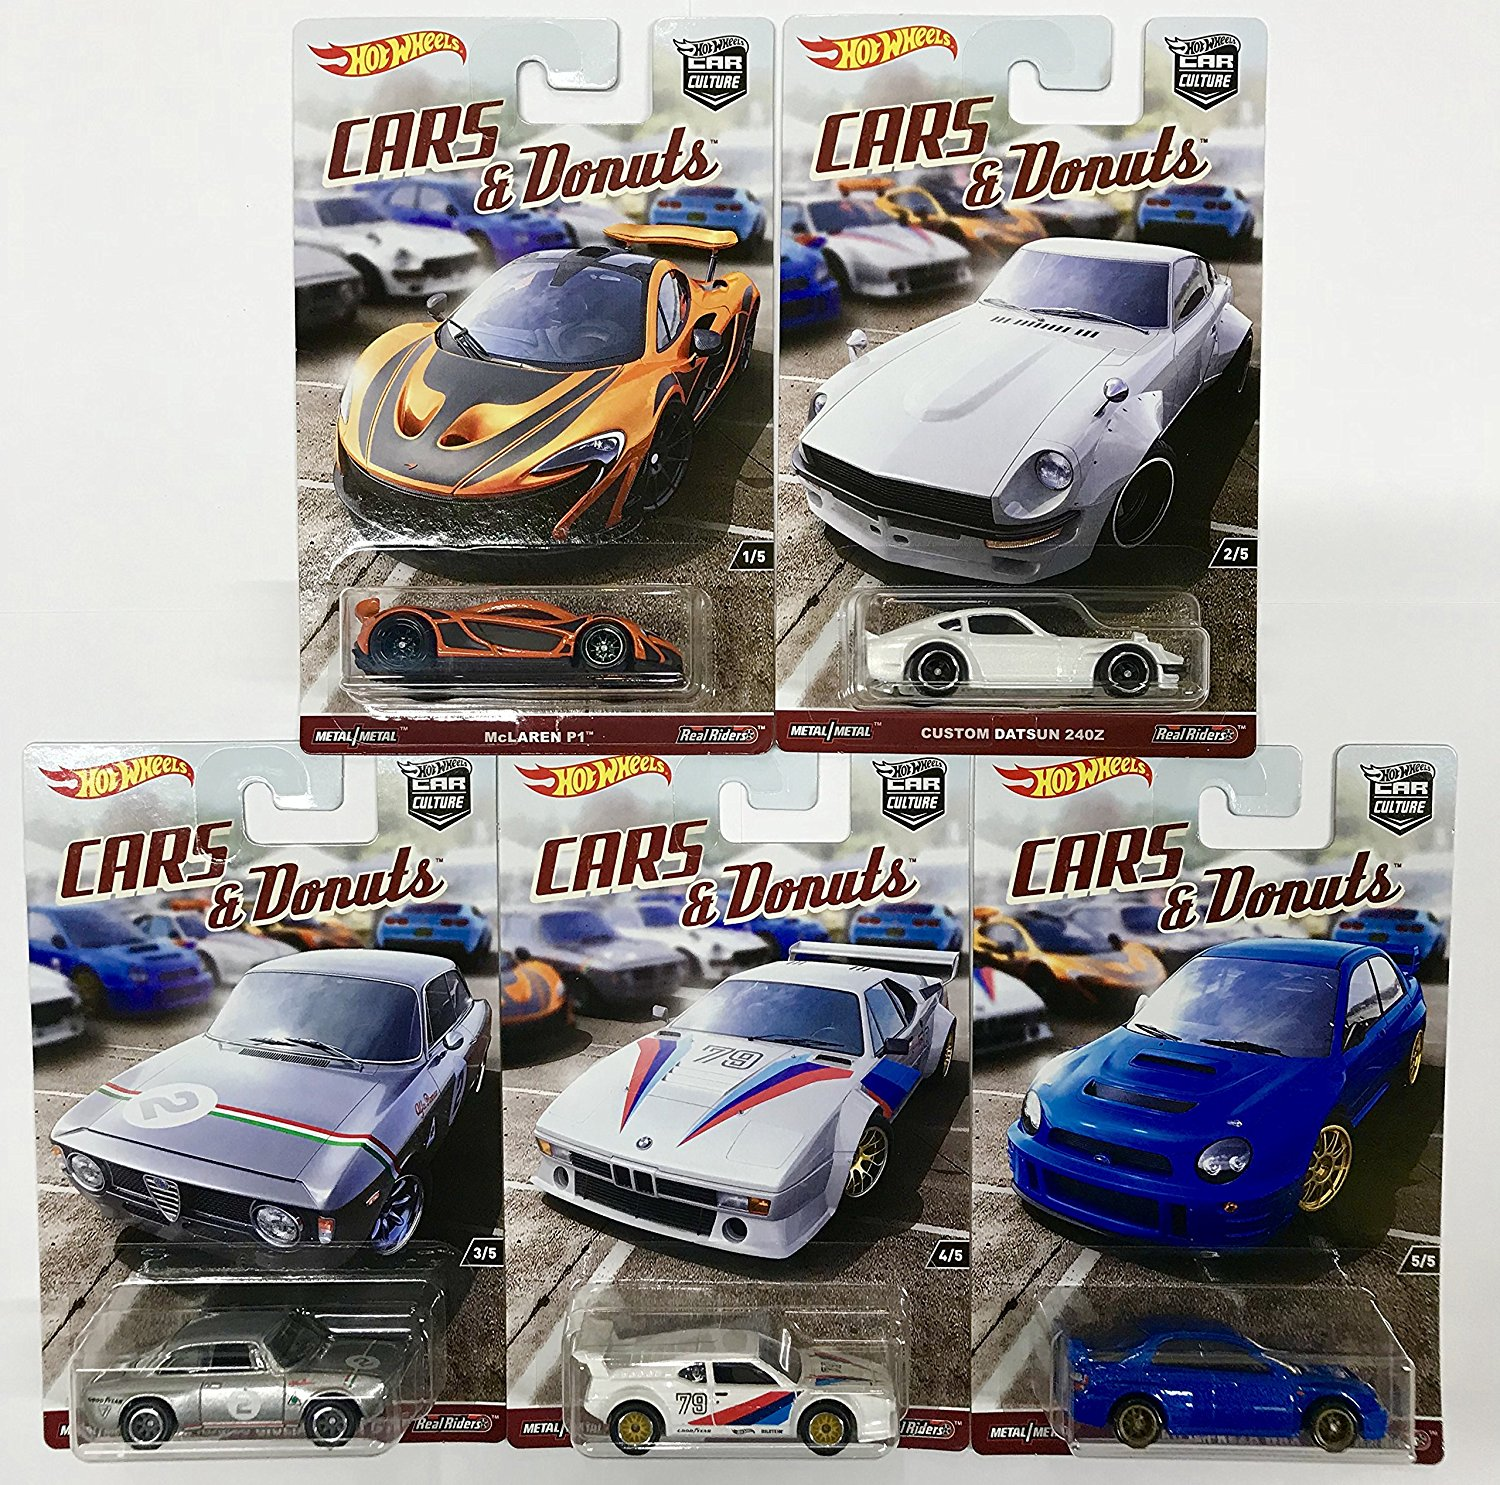 Hot Wheels 1/64 Car Culture Cars and Donuts Set of 5 Real Rider Collectible Die Cast Toy